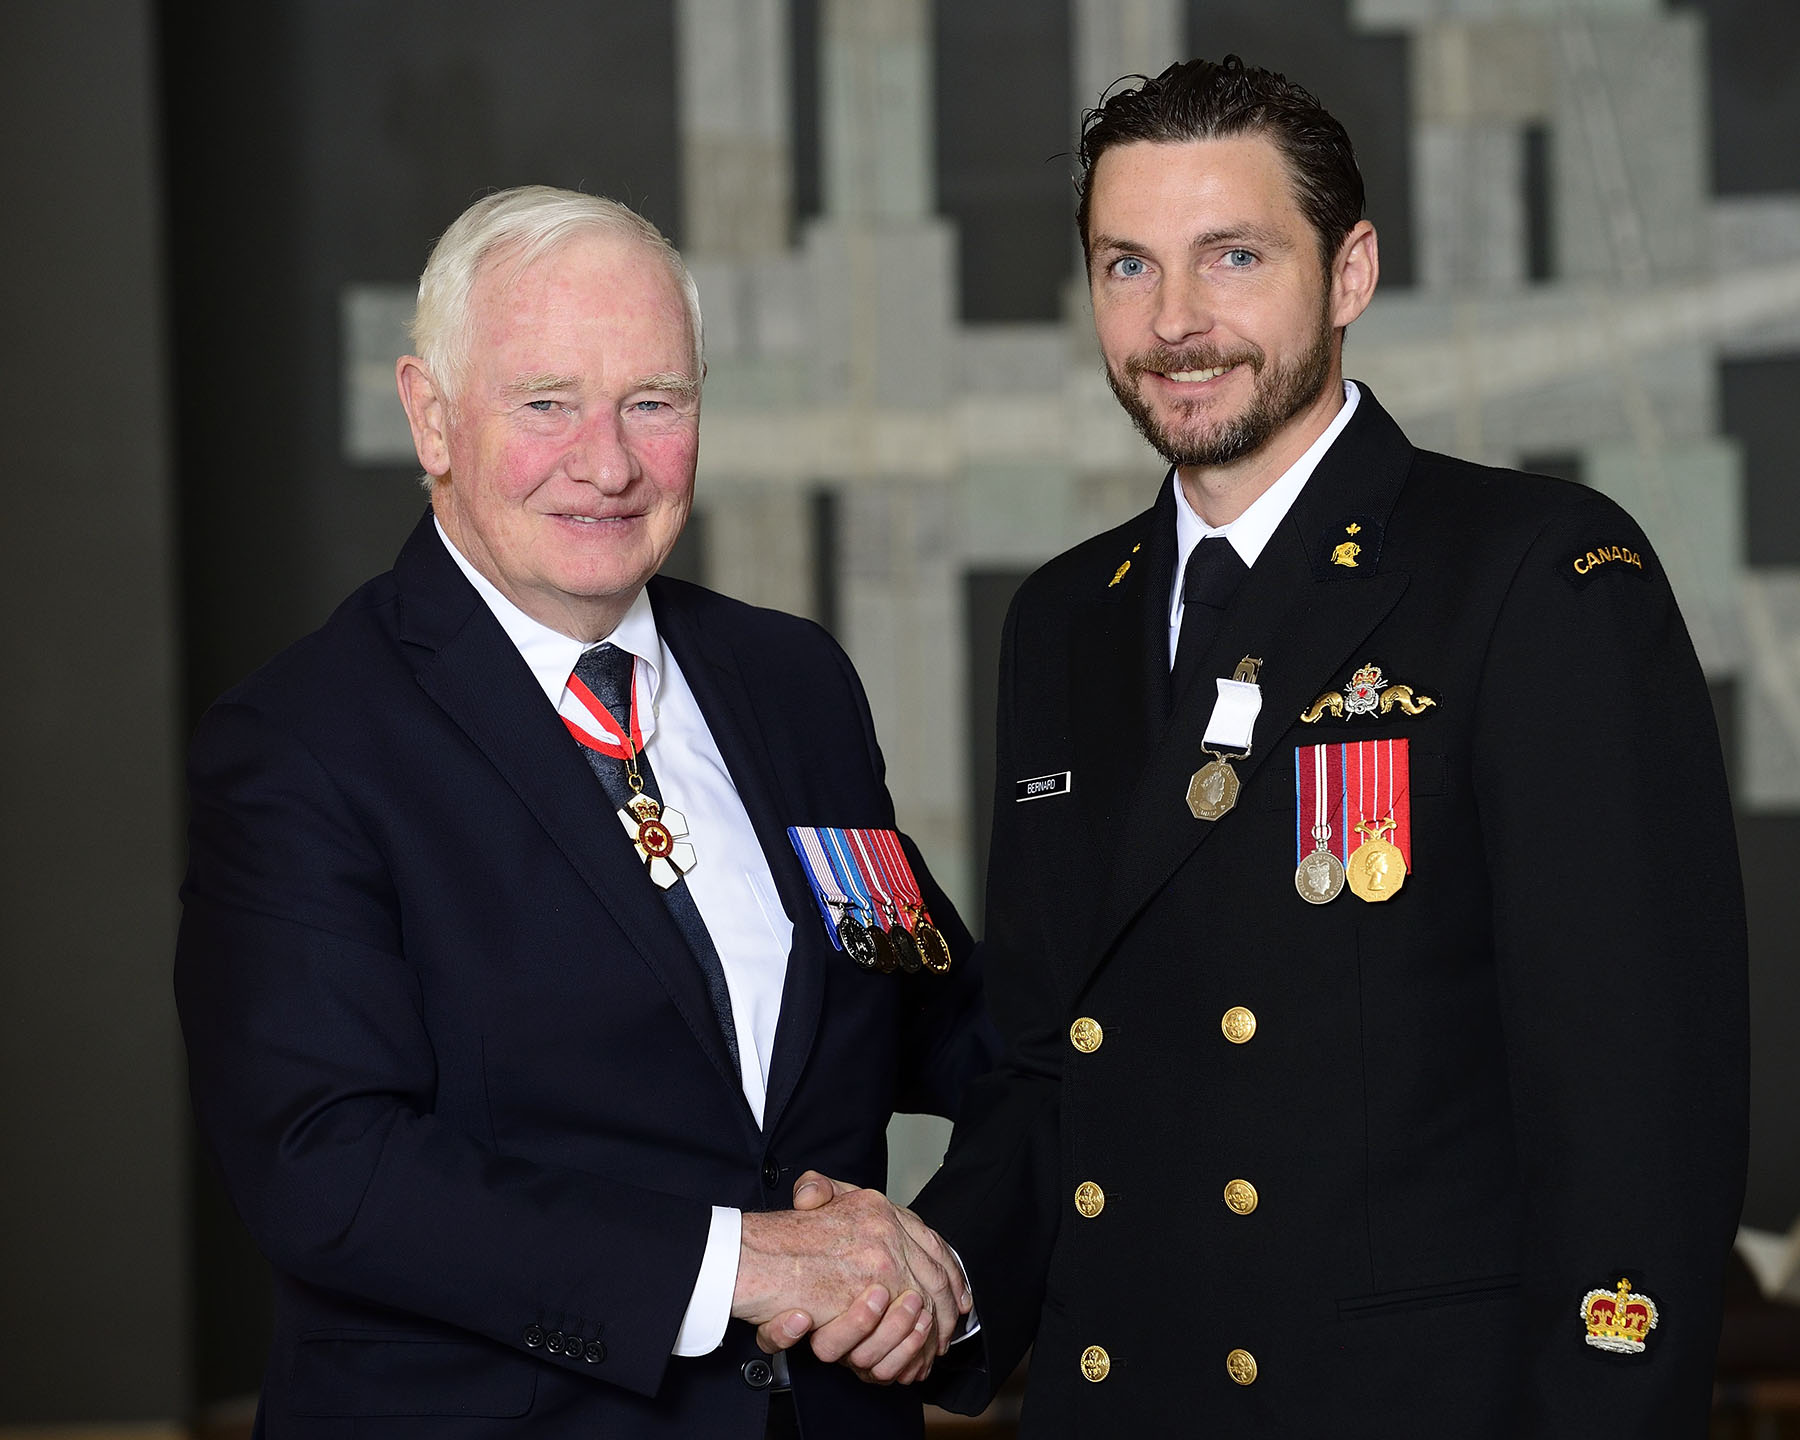 Petty Officer 1st Class Yves Bernard received the Polar Medal for making significant contributions to the discovery of the wreck of Sir John Franklin's HMS Erebus in 2014. He was among the first divers and the very first navy sailor to dive down to the site since Franklin's crew disembarked the Erebus 165 years earlier.